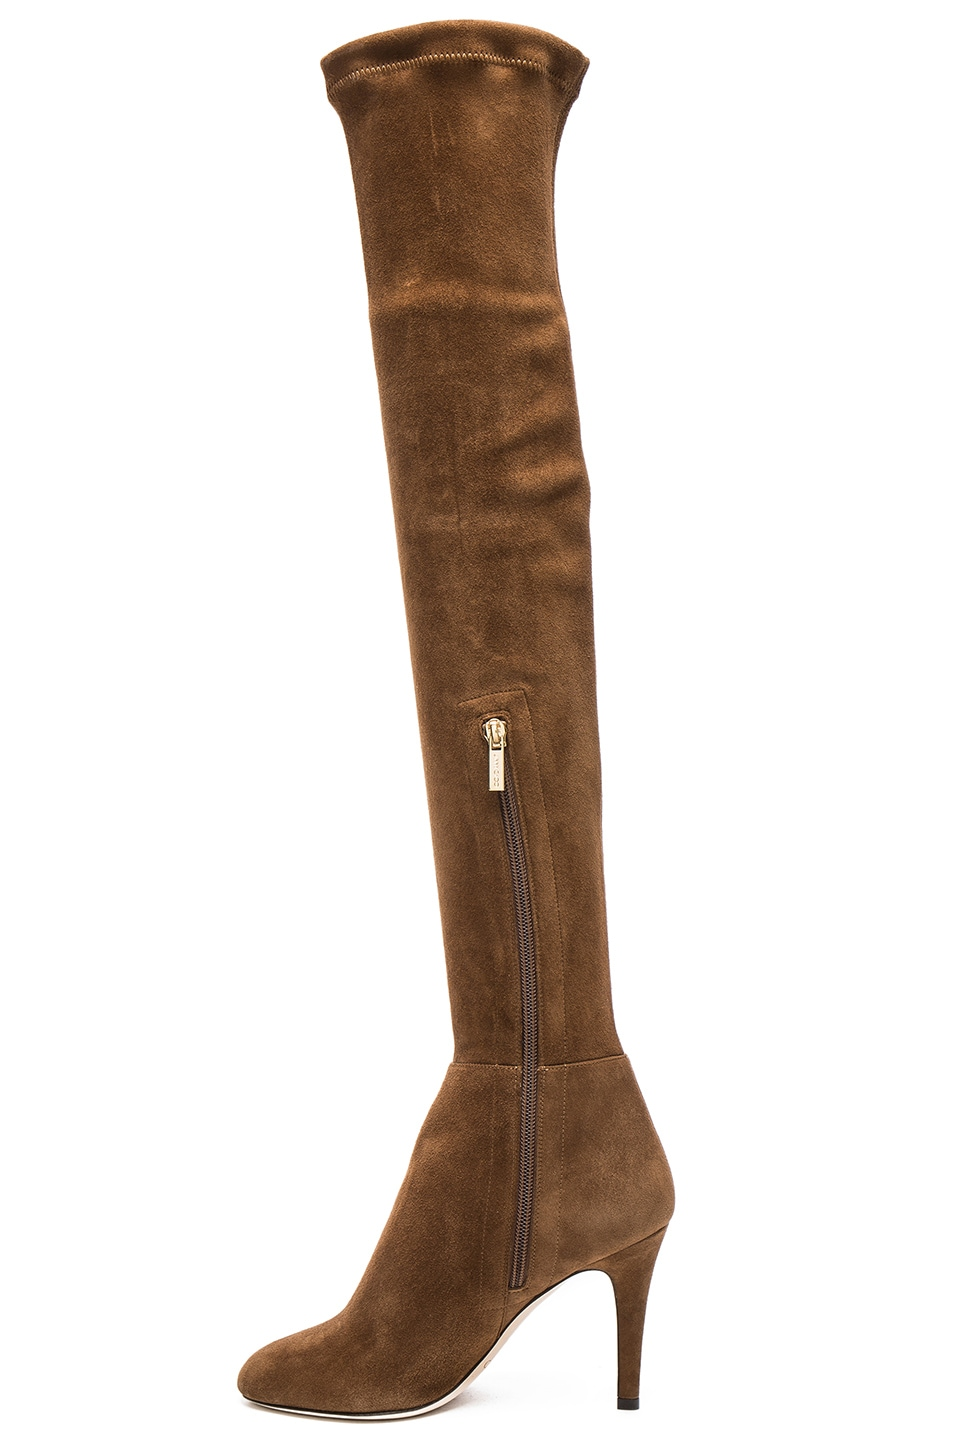 Image 5 of Jimmy Choo Suede Toni Boots in Khaki Brown